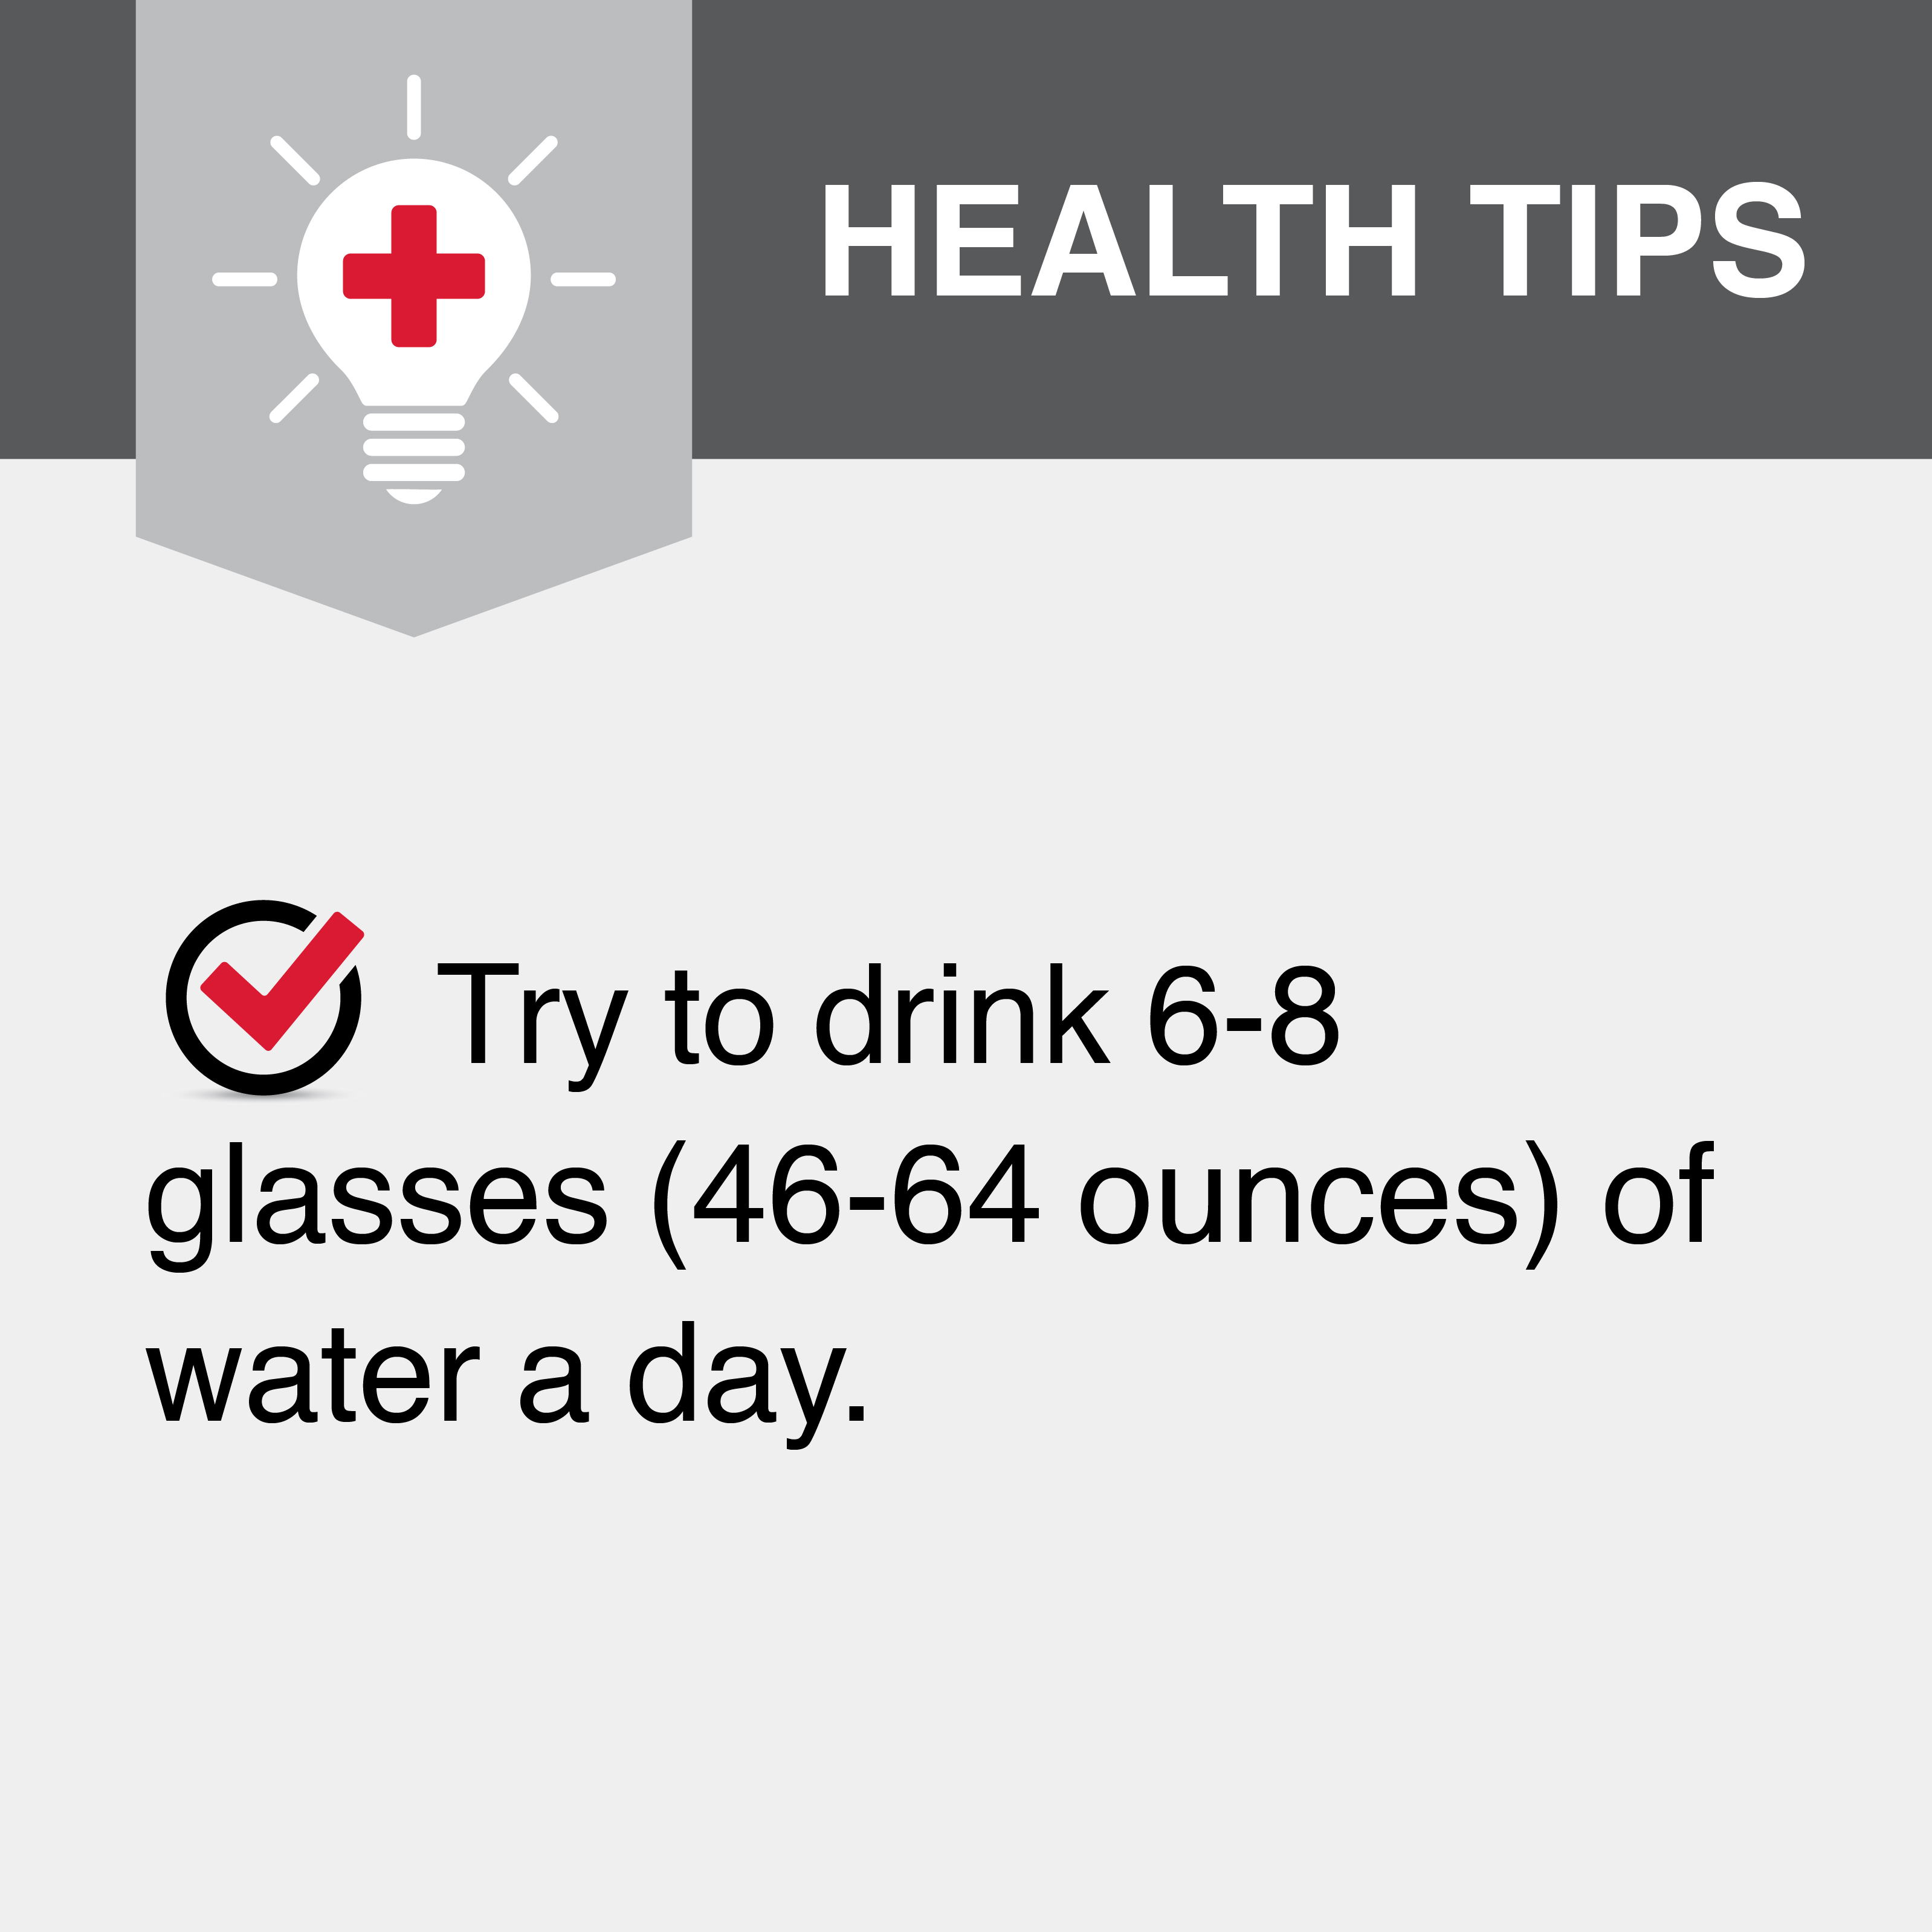 Try to drink 6-8 glasses (46-64 ounces) of water a day.